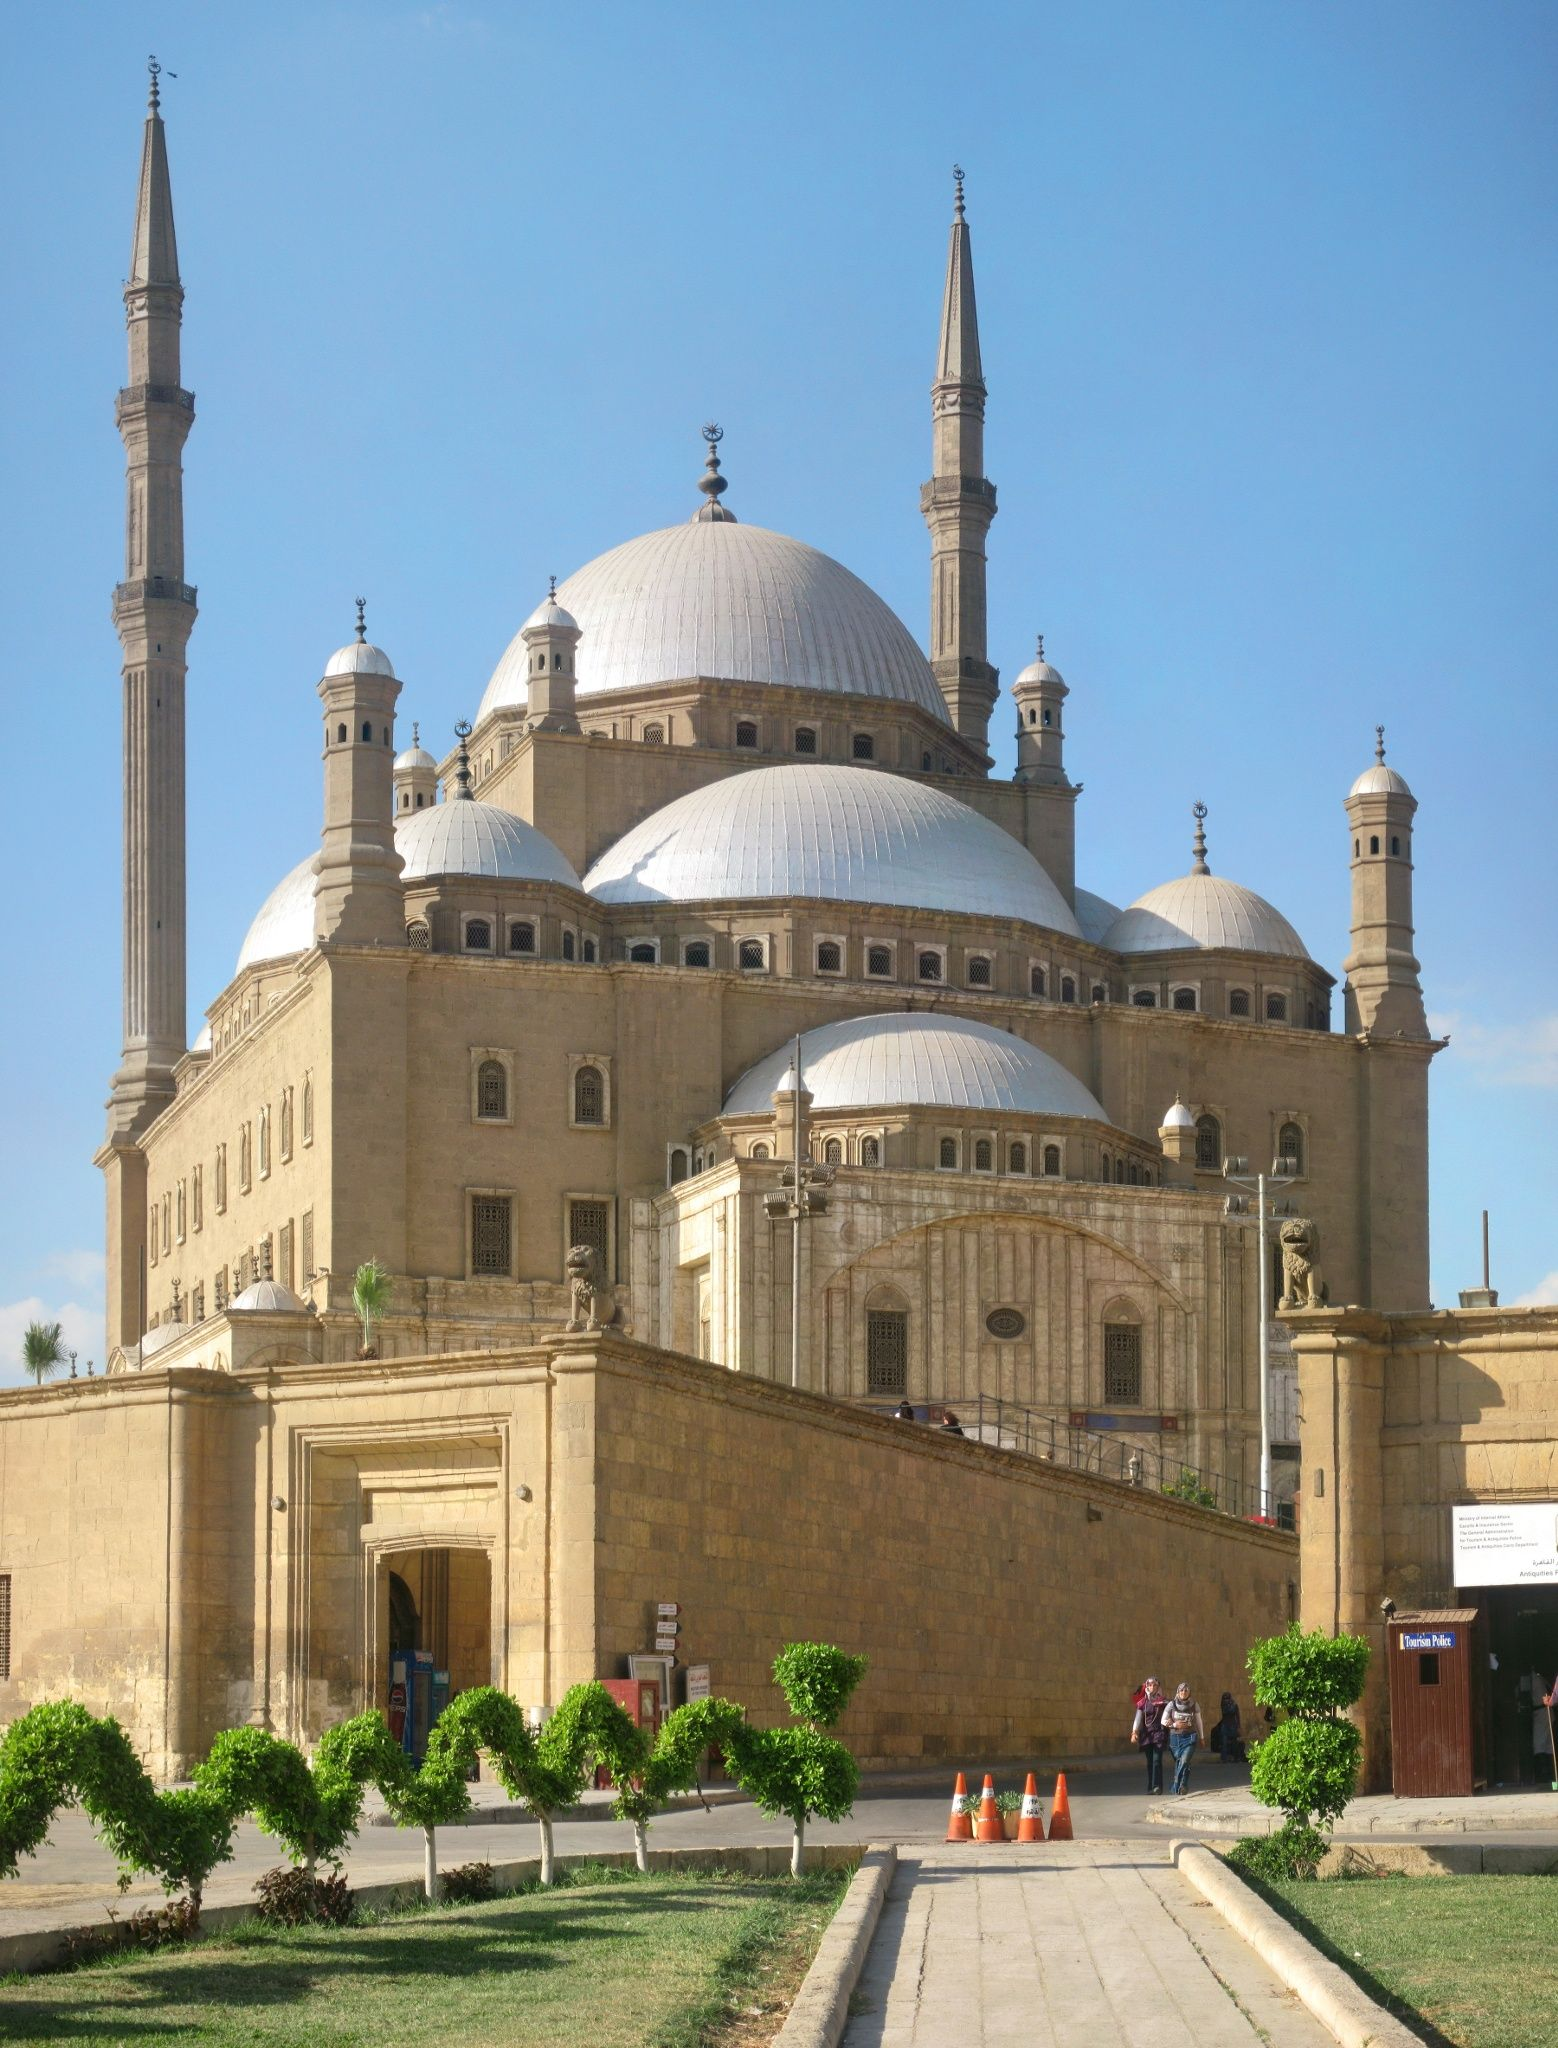 """Mosque of Muhammad Ali, Cairo"" by Majdy Jaradat on 500px - CAIRO, EGYPT"